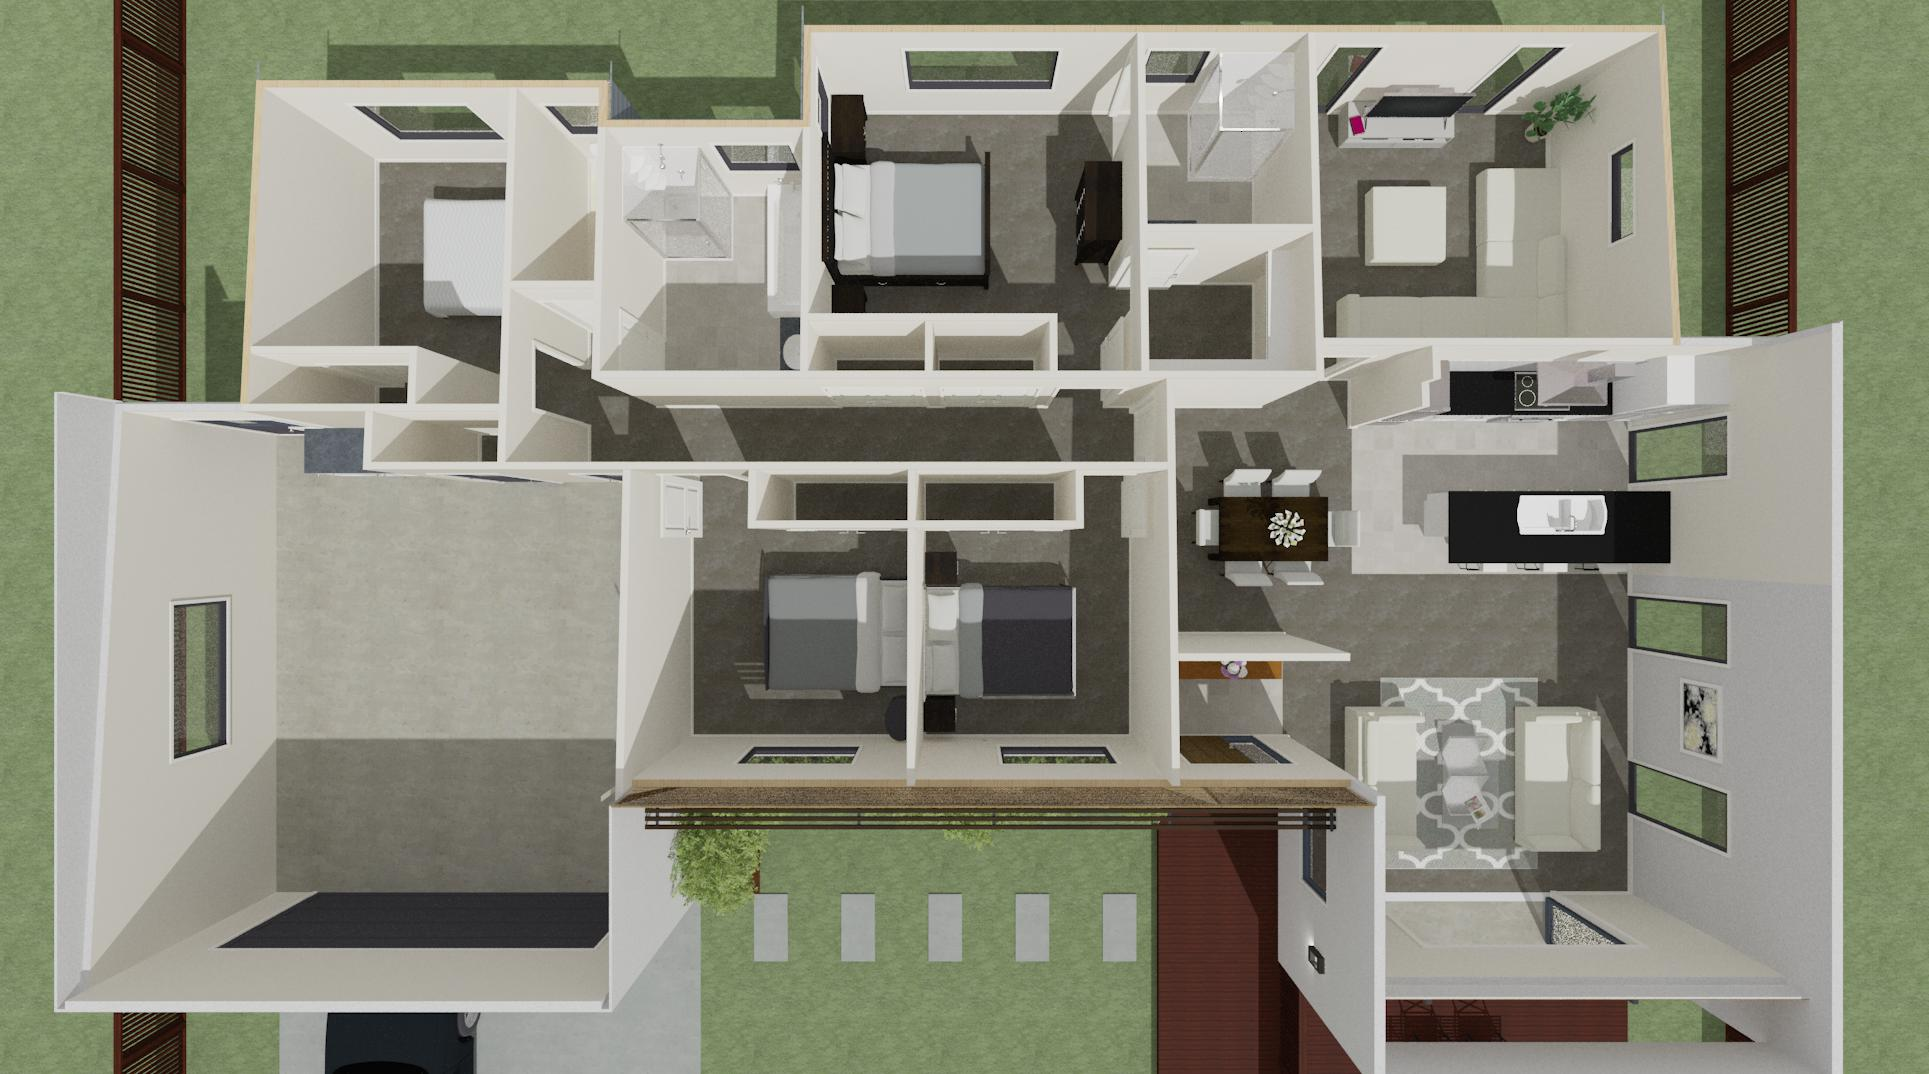 Lot 40 Floor Plan